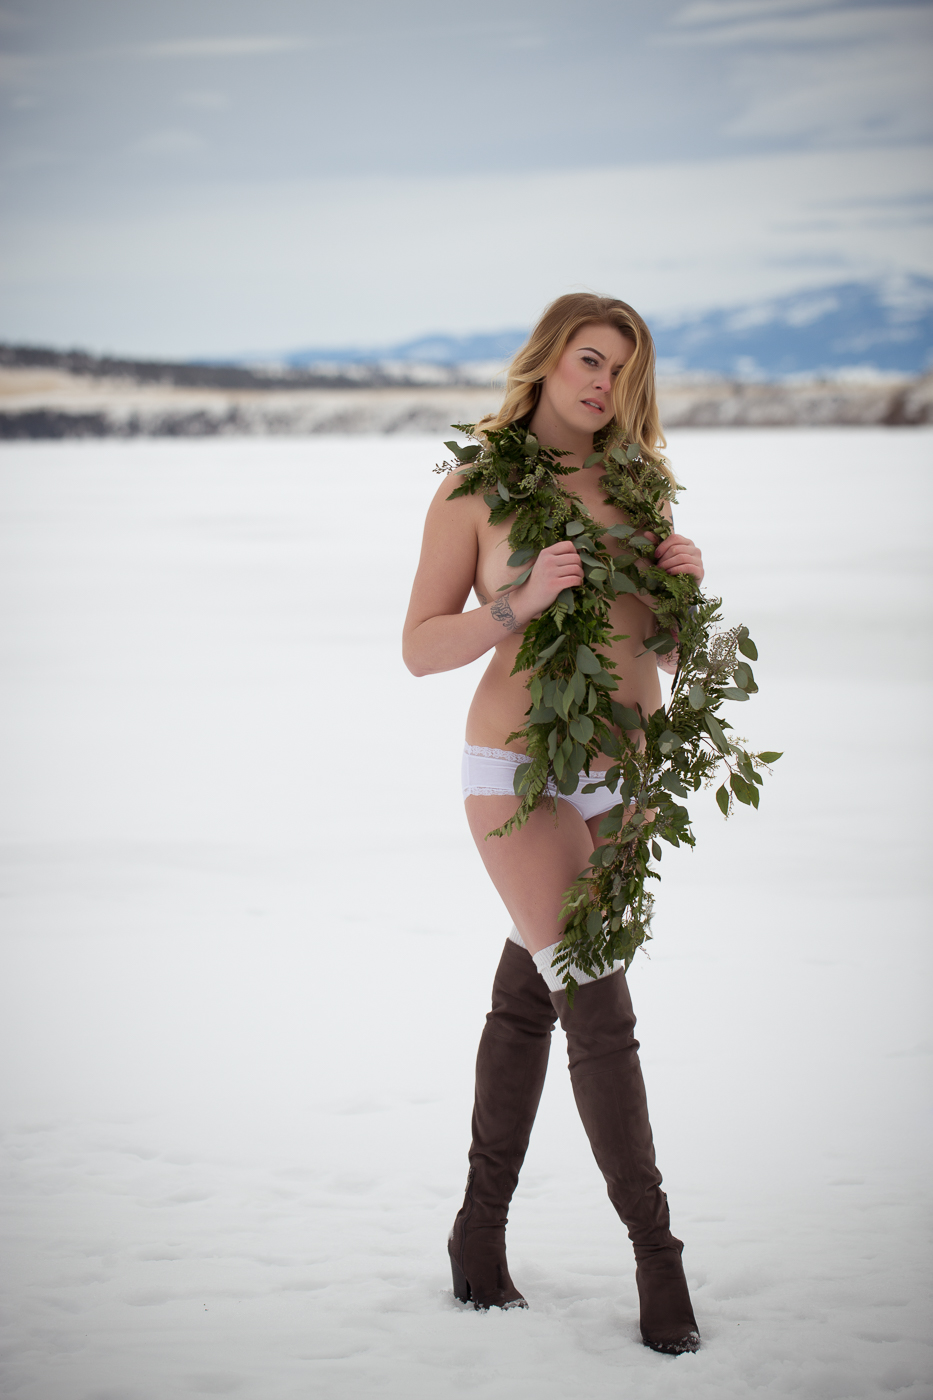 Woman on frozen lake with kick ass boots. Montana Outdoor Boudoir photo by Misty Boles Intimate Photography